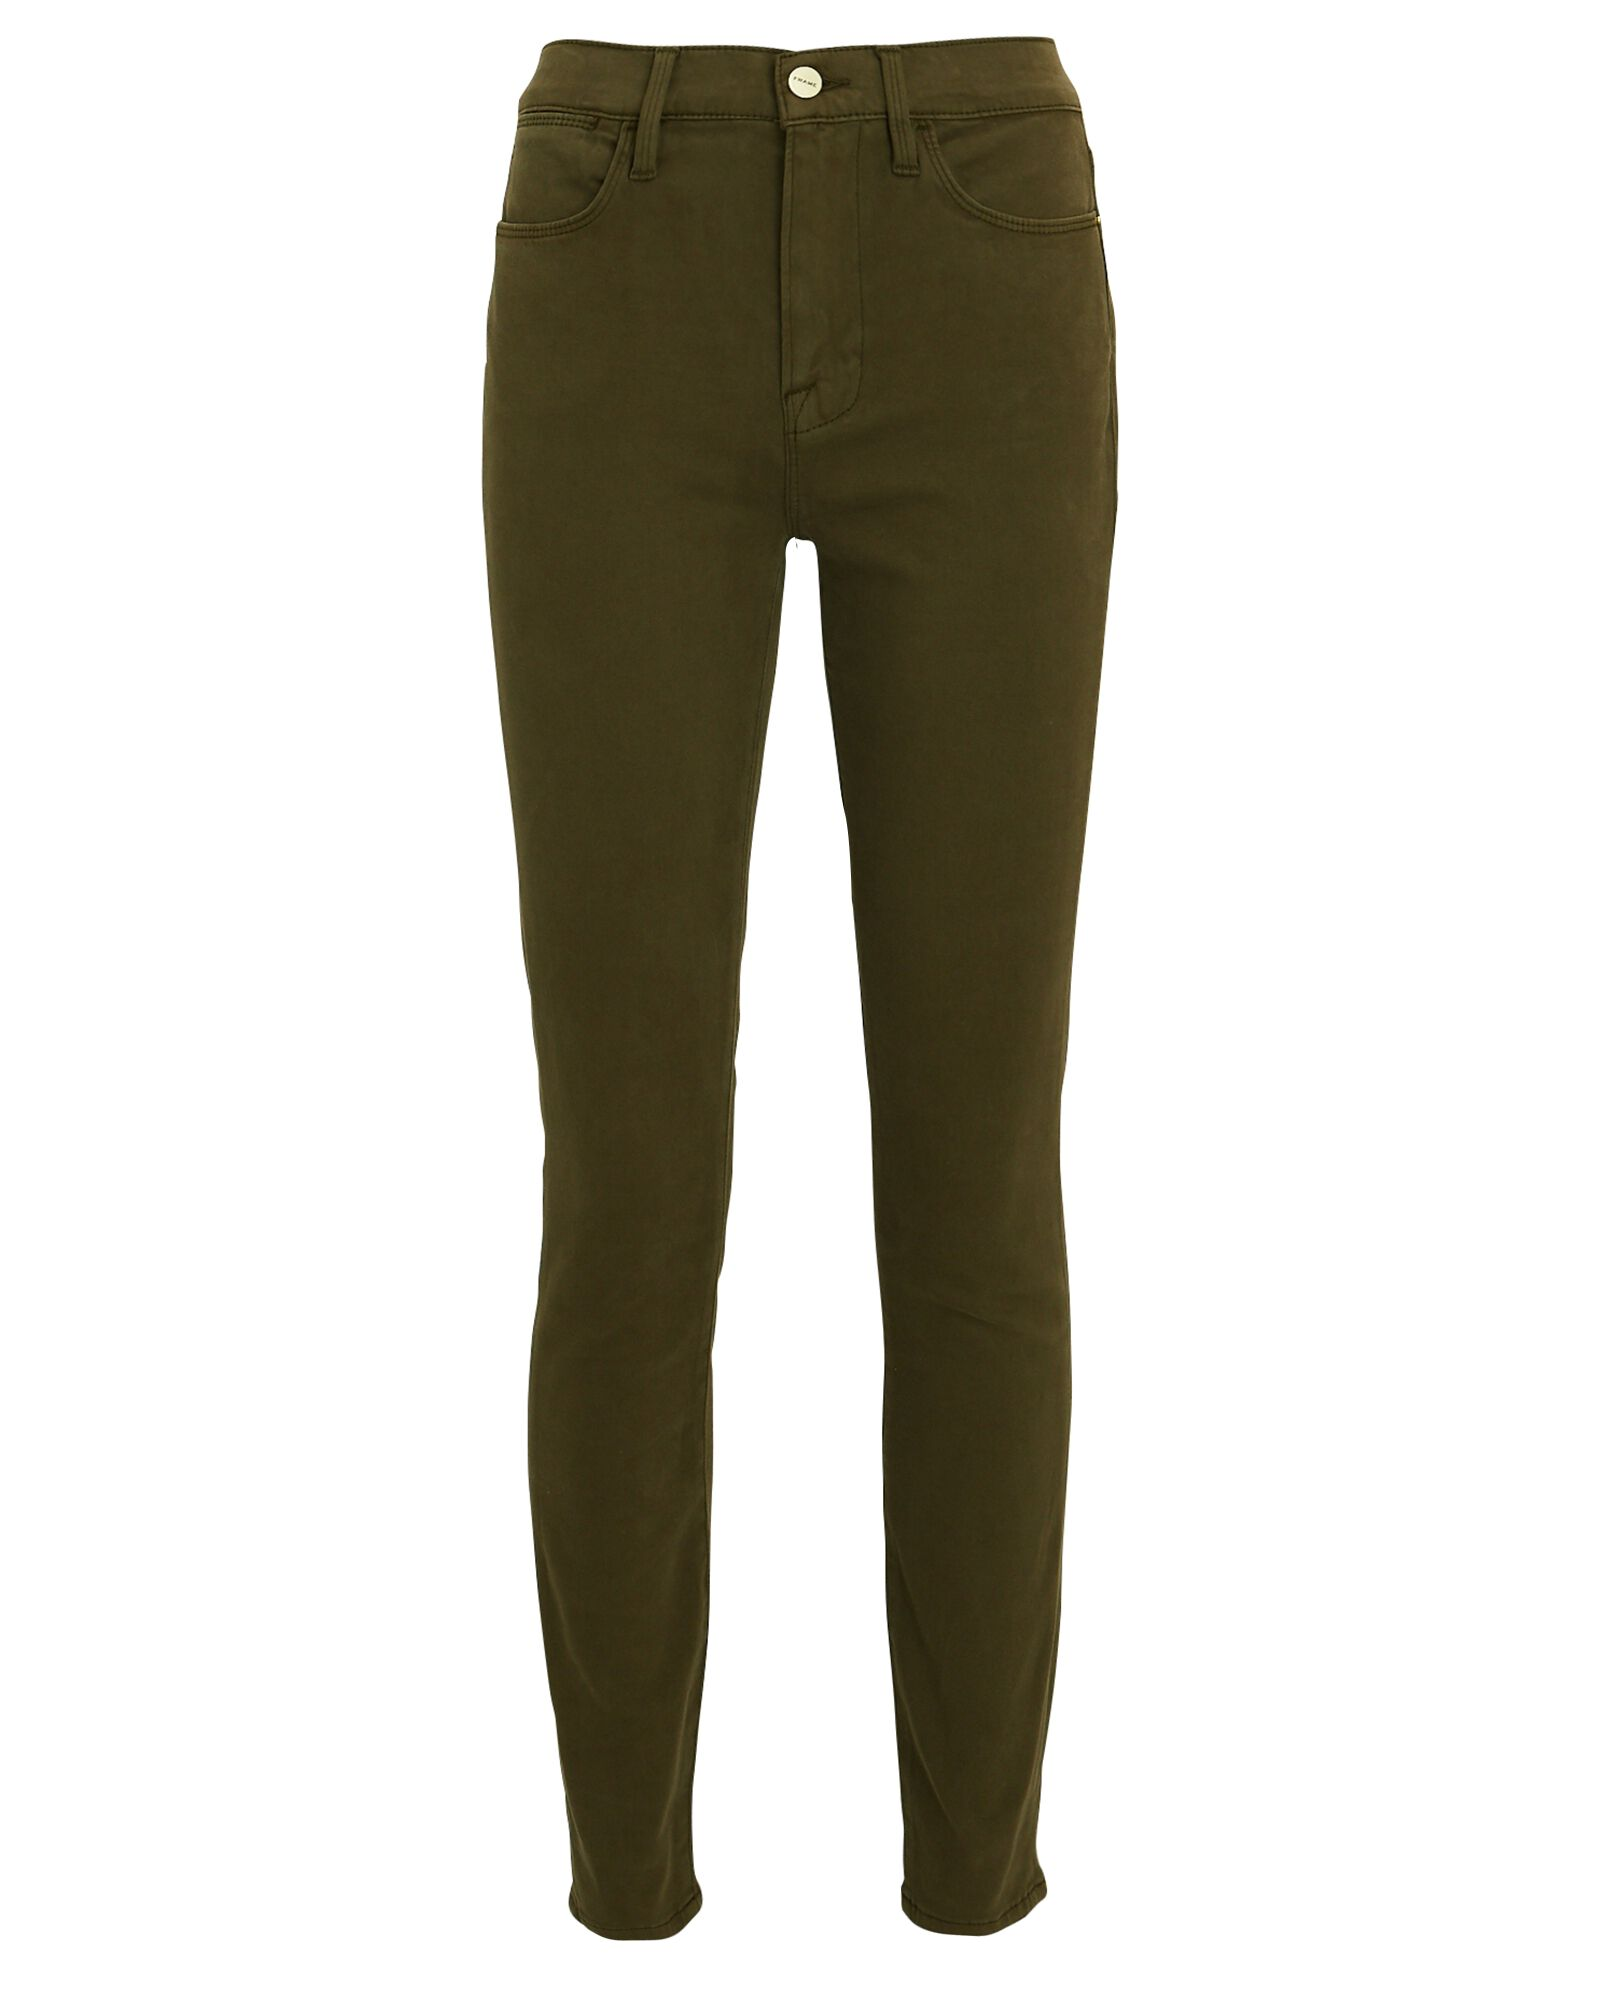 Le High Skinny Jeans, OLIVE/ARMY, hi-res